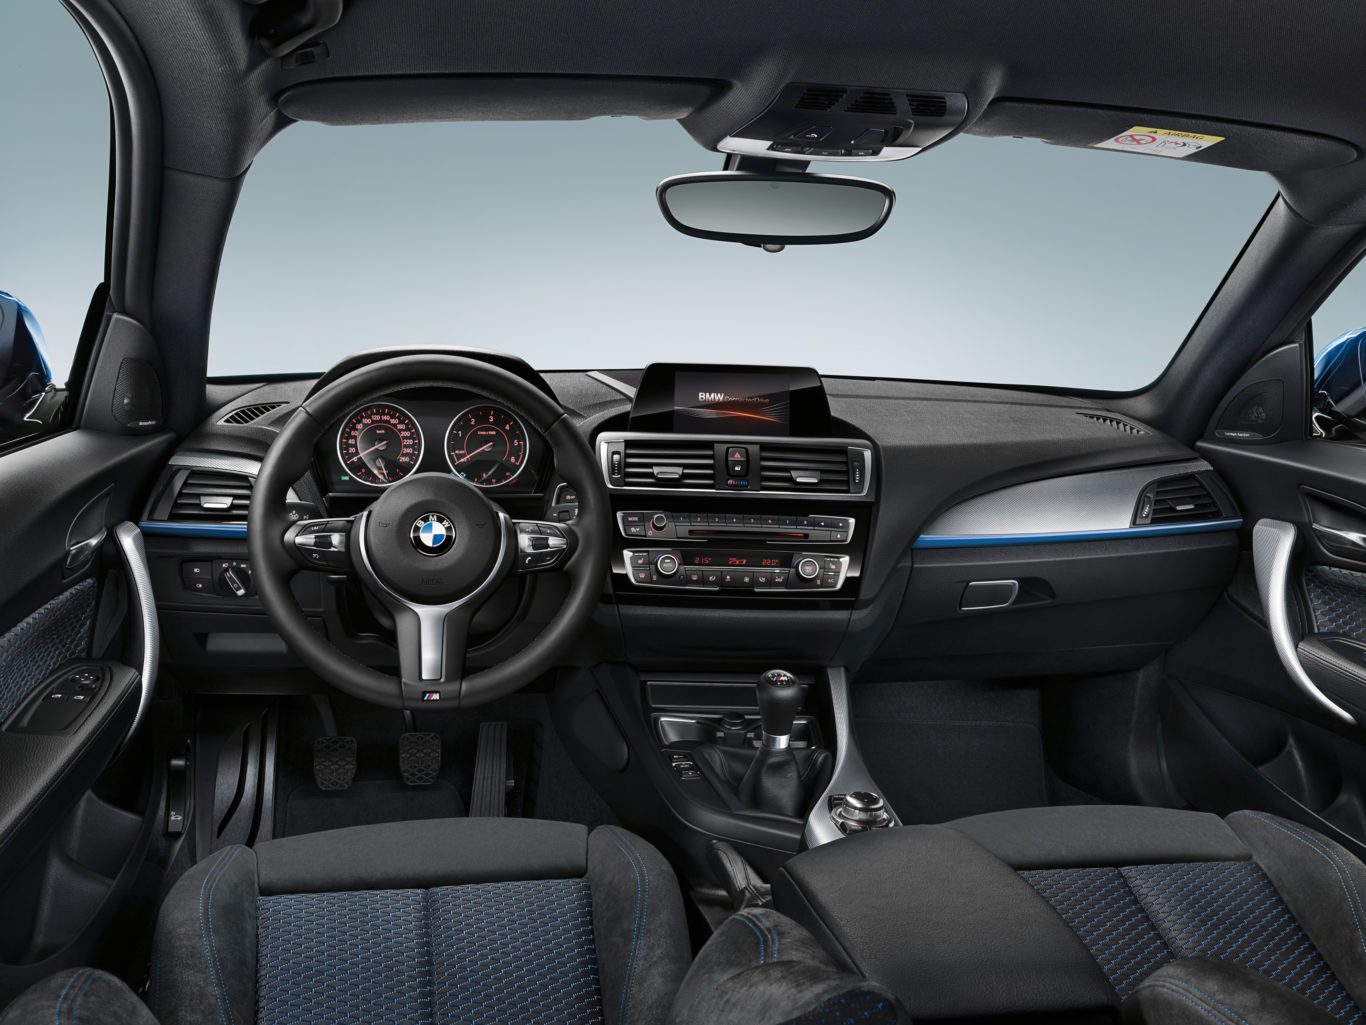 The interior of the 1 Series is solidly built